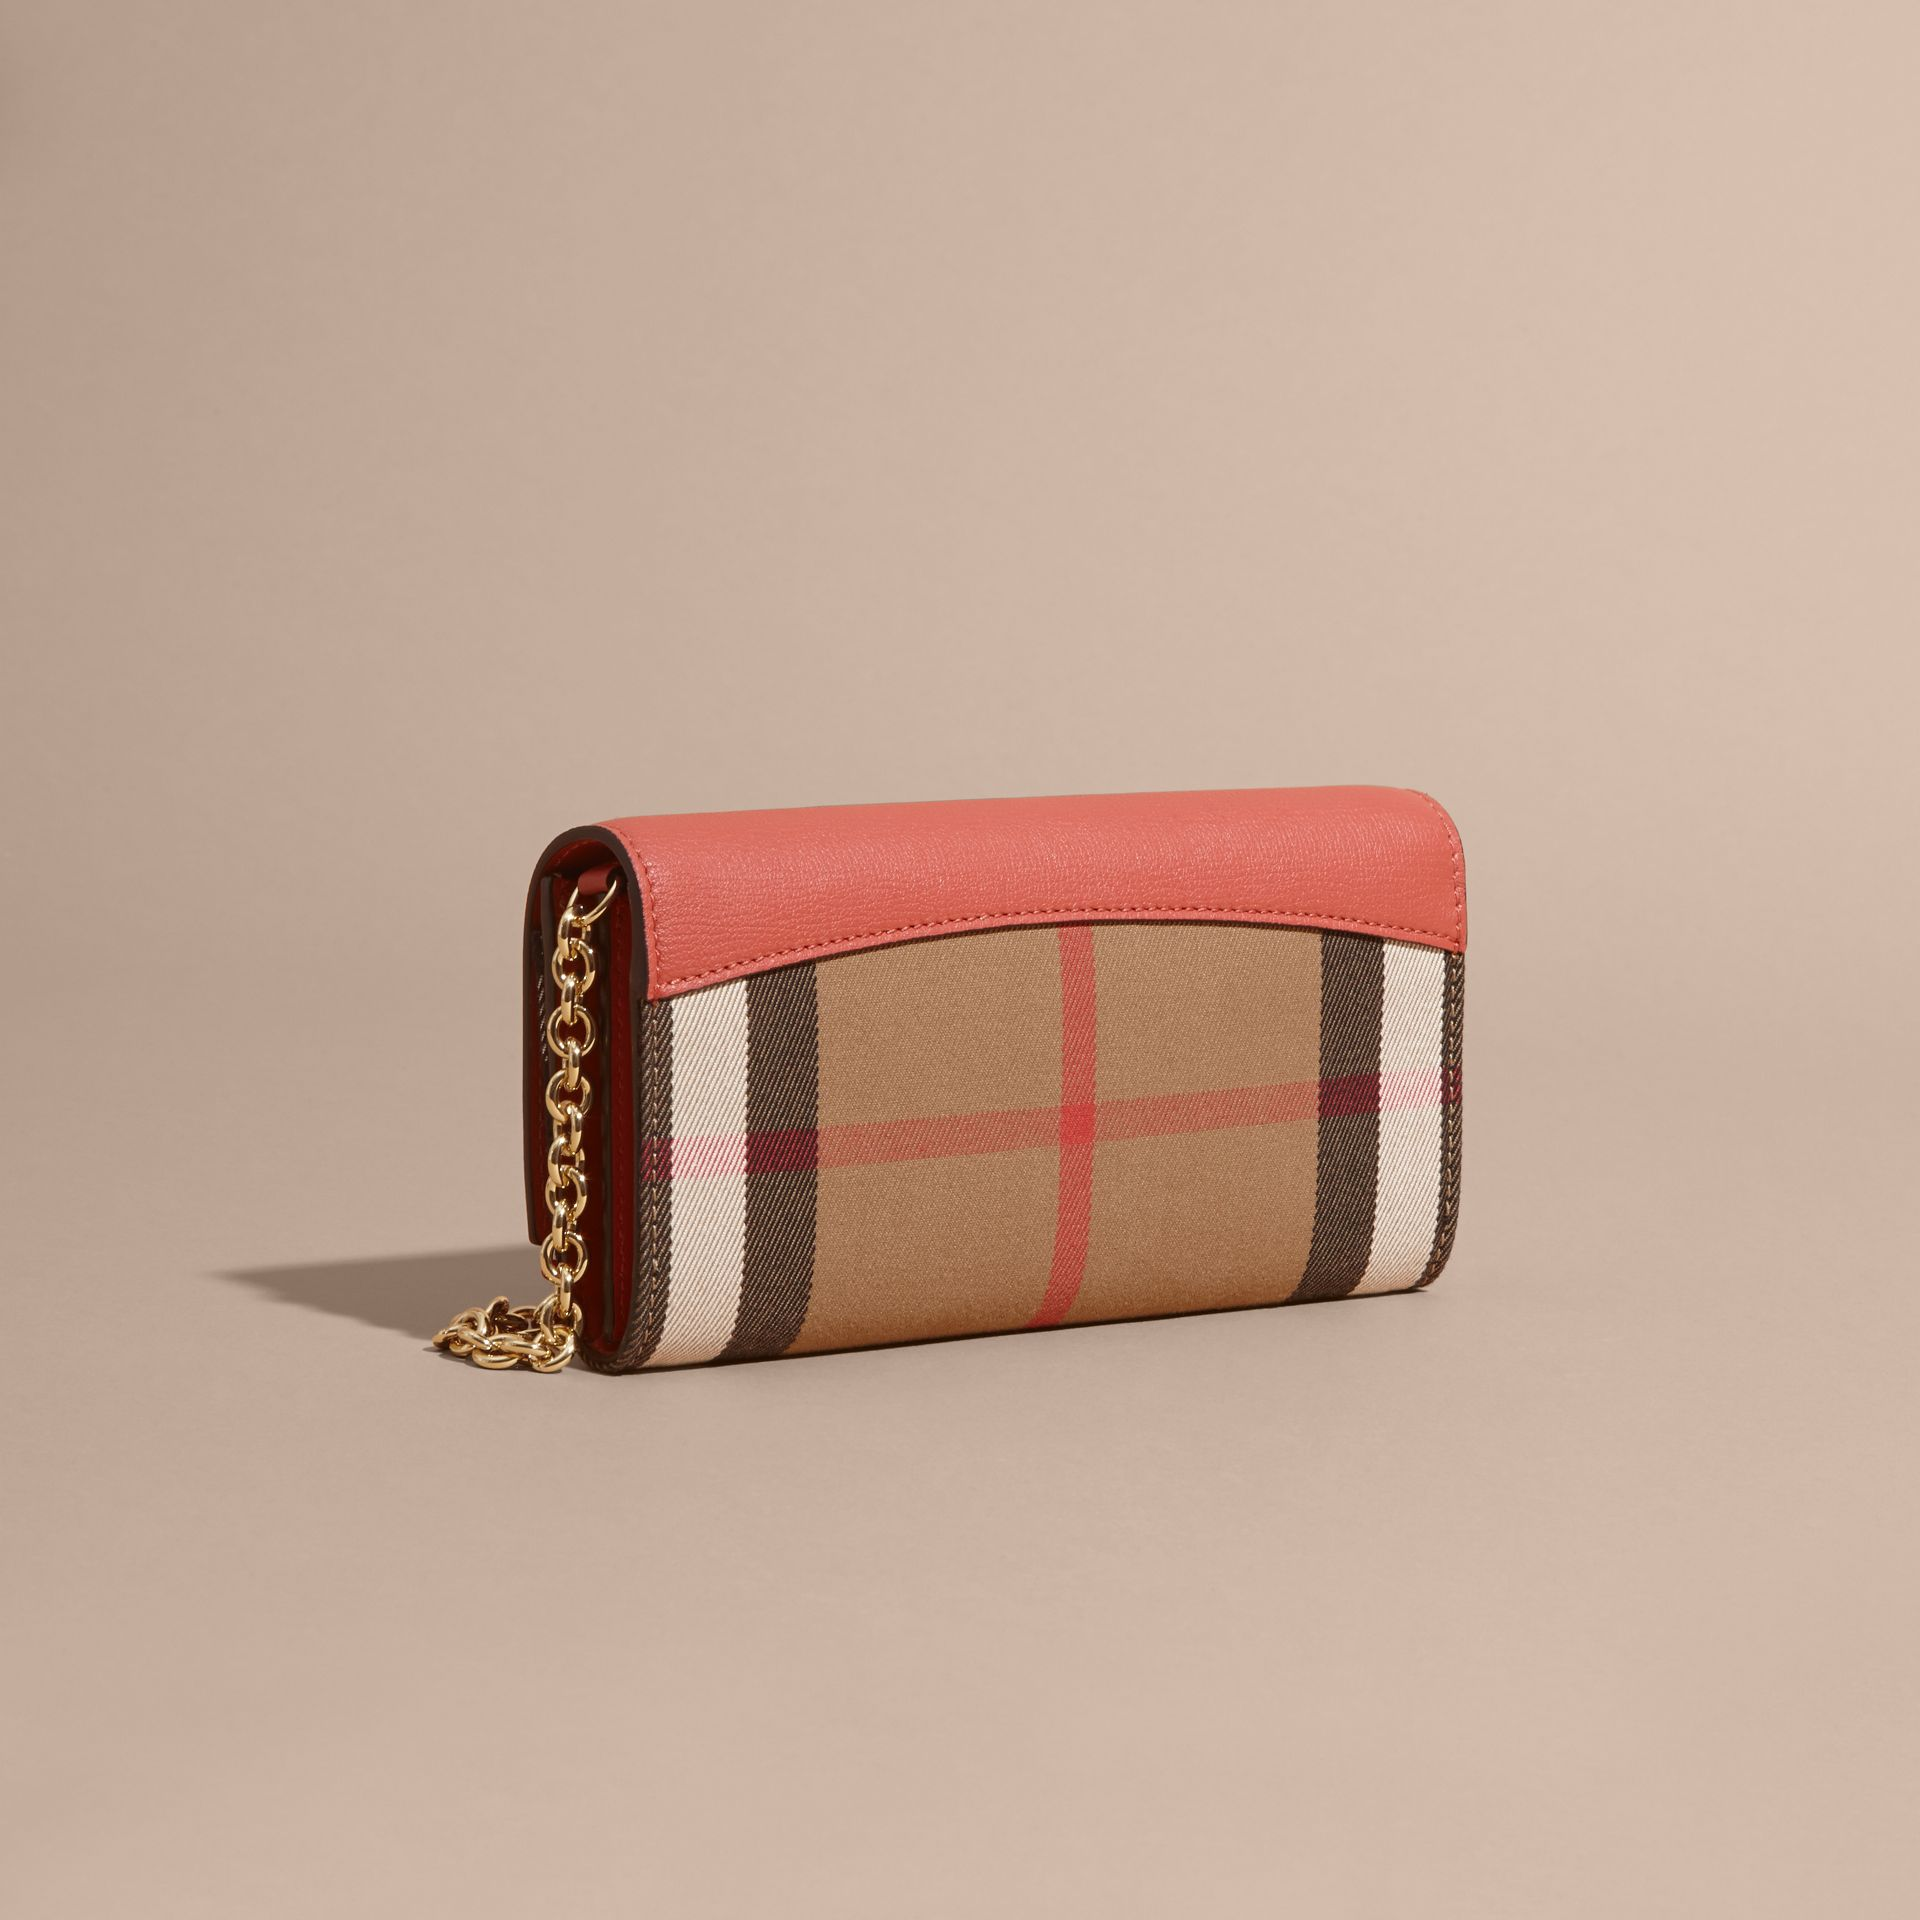 House Check and Leather Wallet with Chain in Cinnamon Red - Women | Burberry - gallery image 4